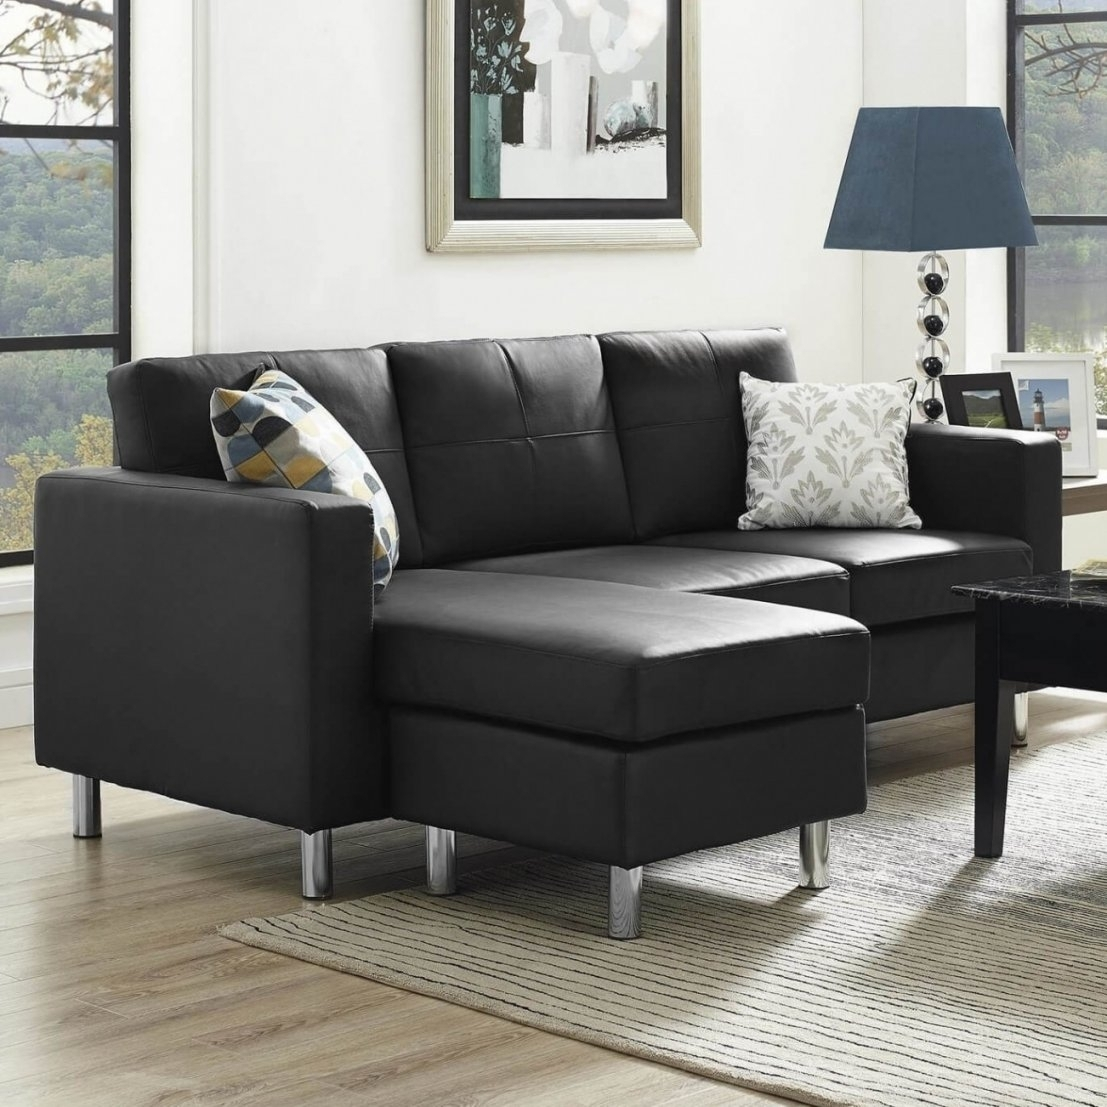 Cheap Sectional Sofas Under 500 97 For Your Brown Leather With for Sectional Sofas Under 500 (Image 5 of 15)